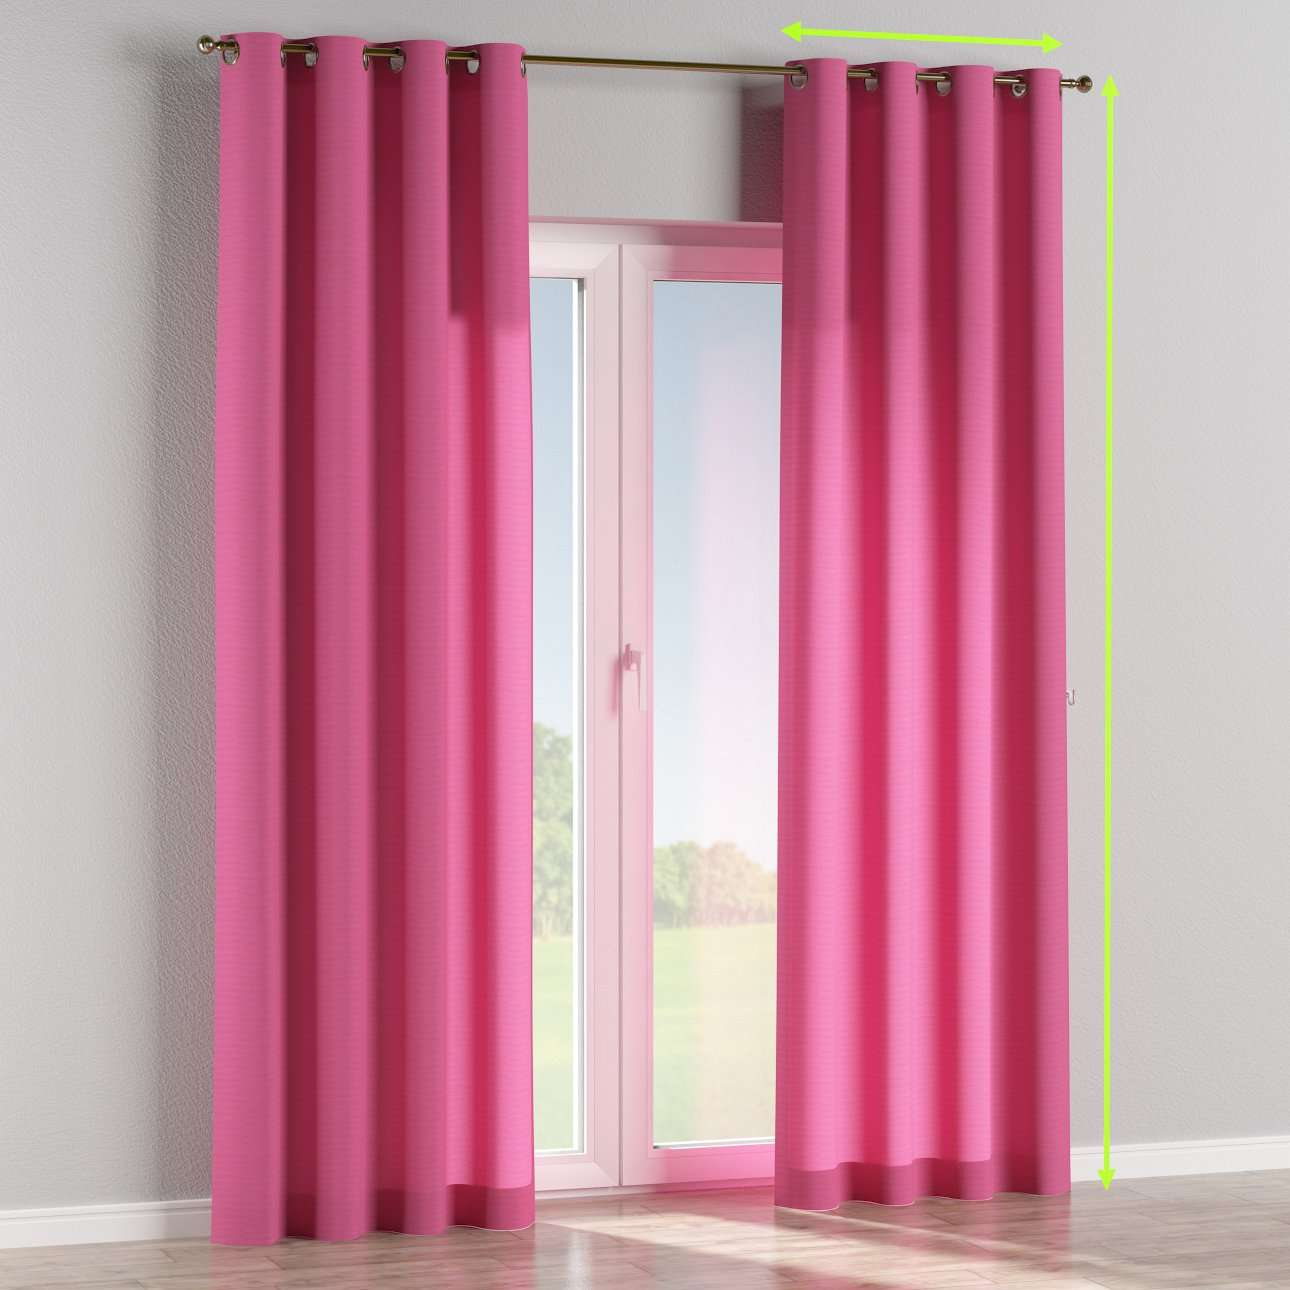 Eyelet curtains in collection Jupiter, fabric: 127-24